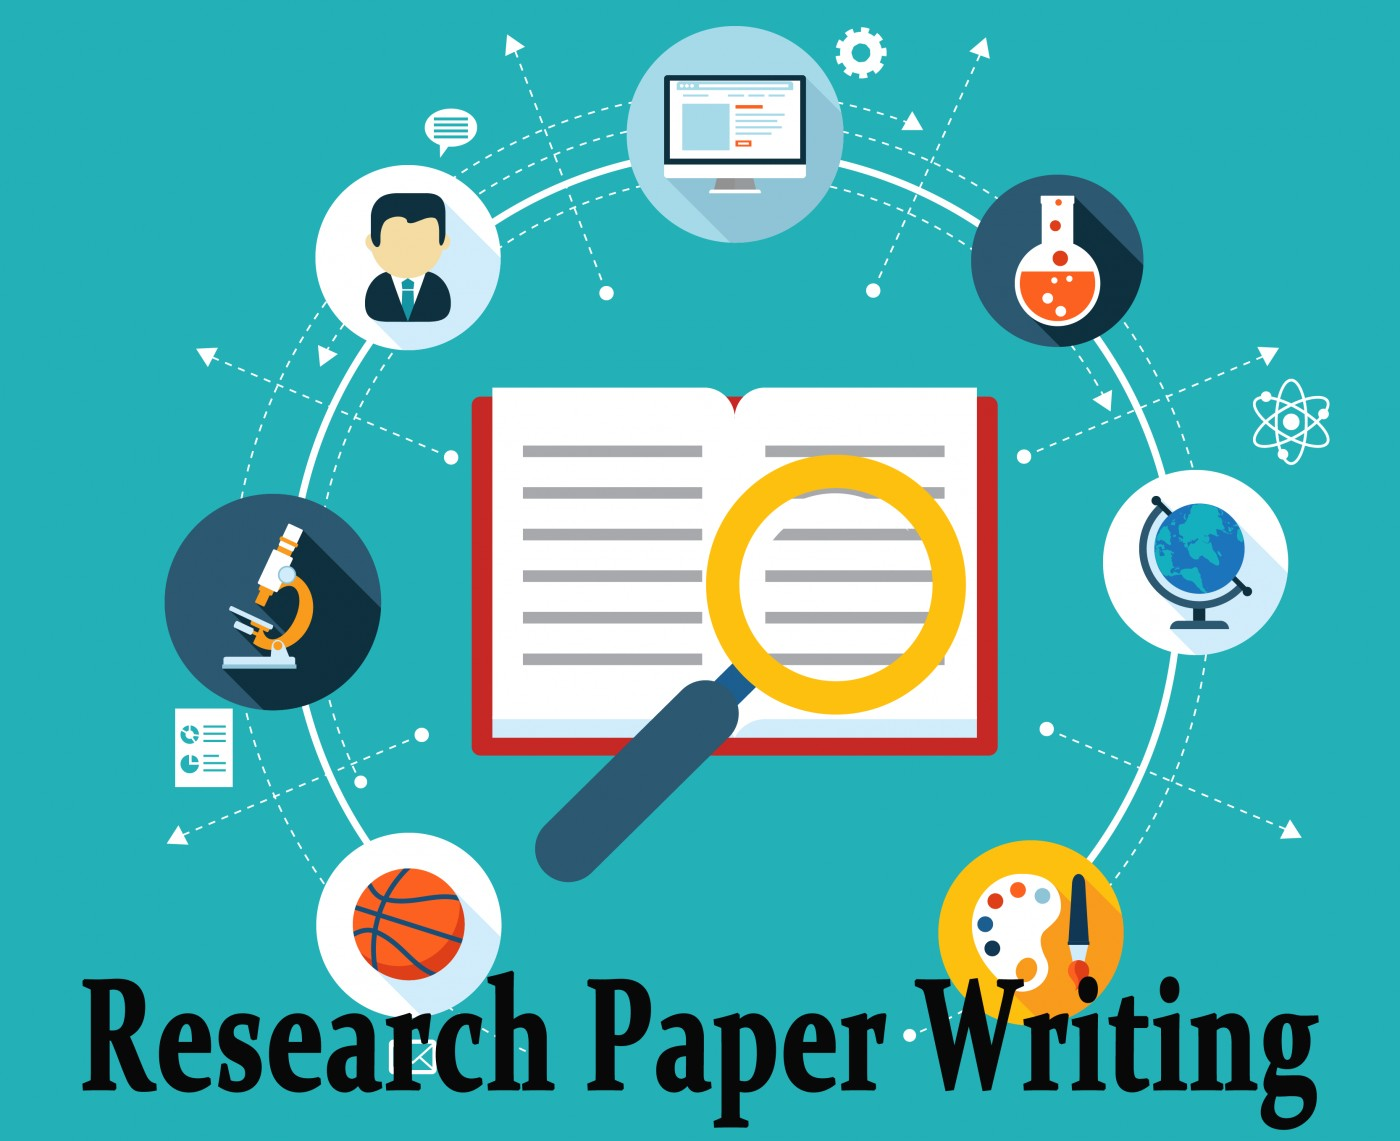 009 Writing The Research Paper 503 Effective Phenomenal 10 Steps In Pdf Papers A Complete Guide 1400